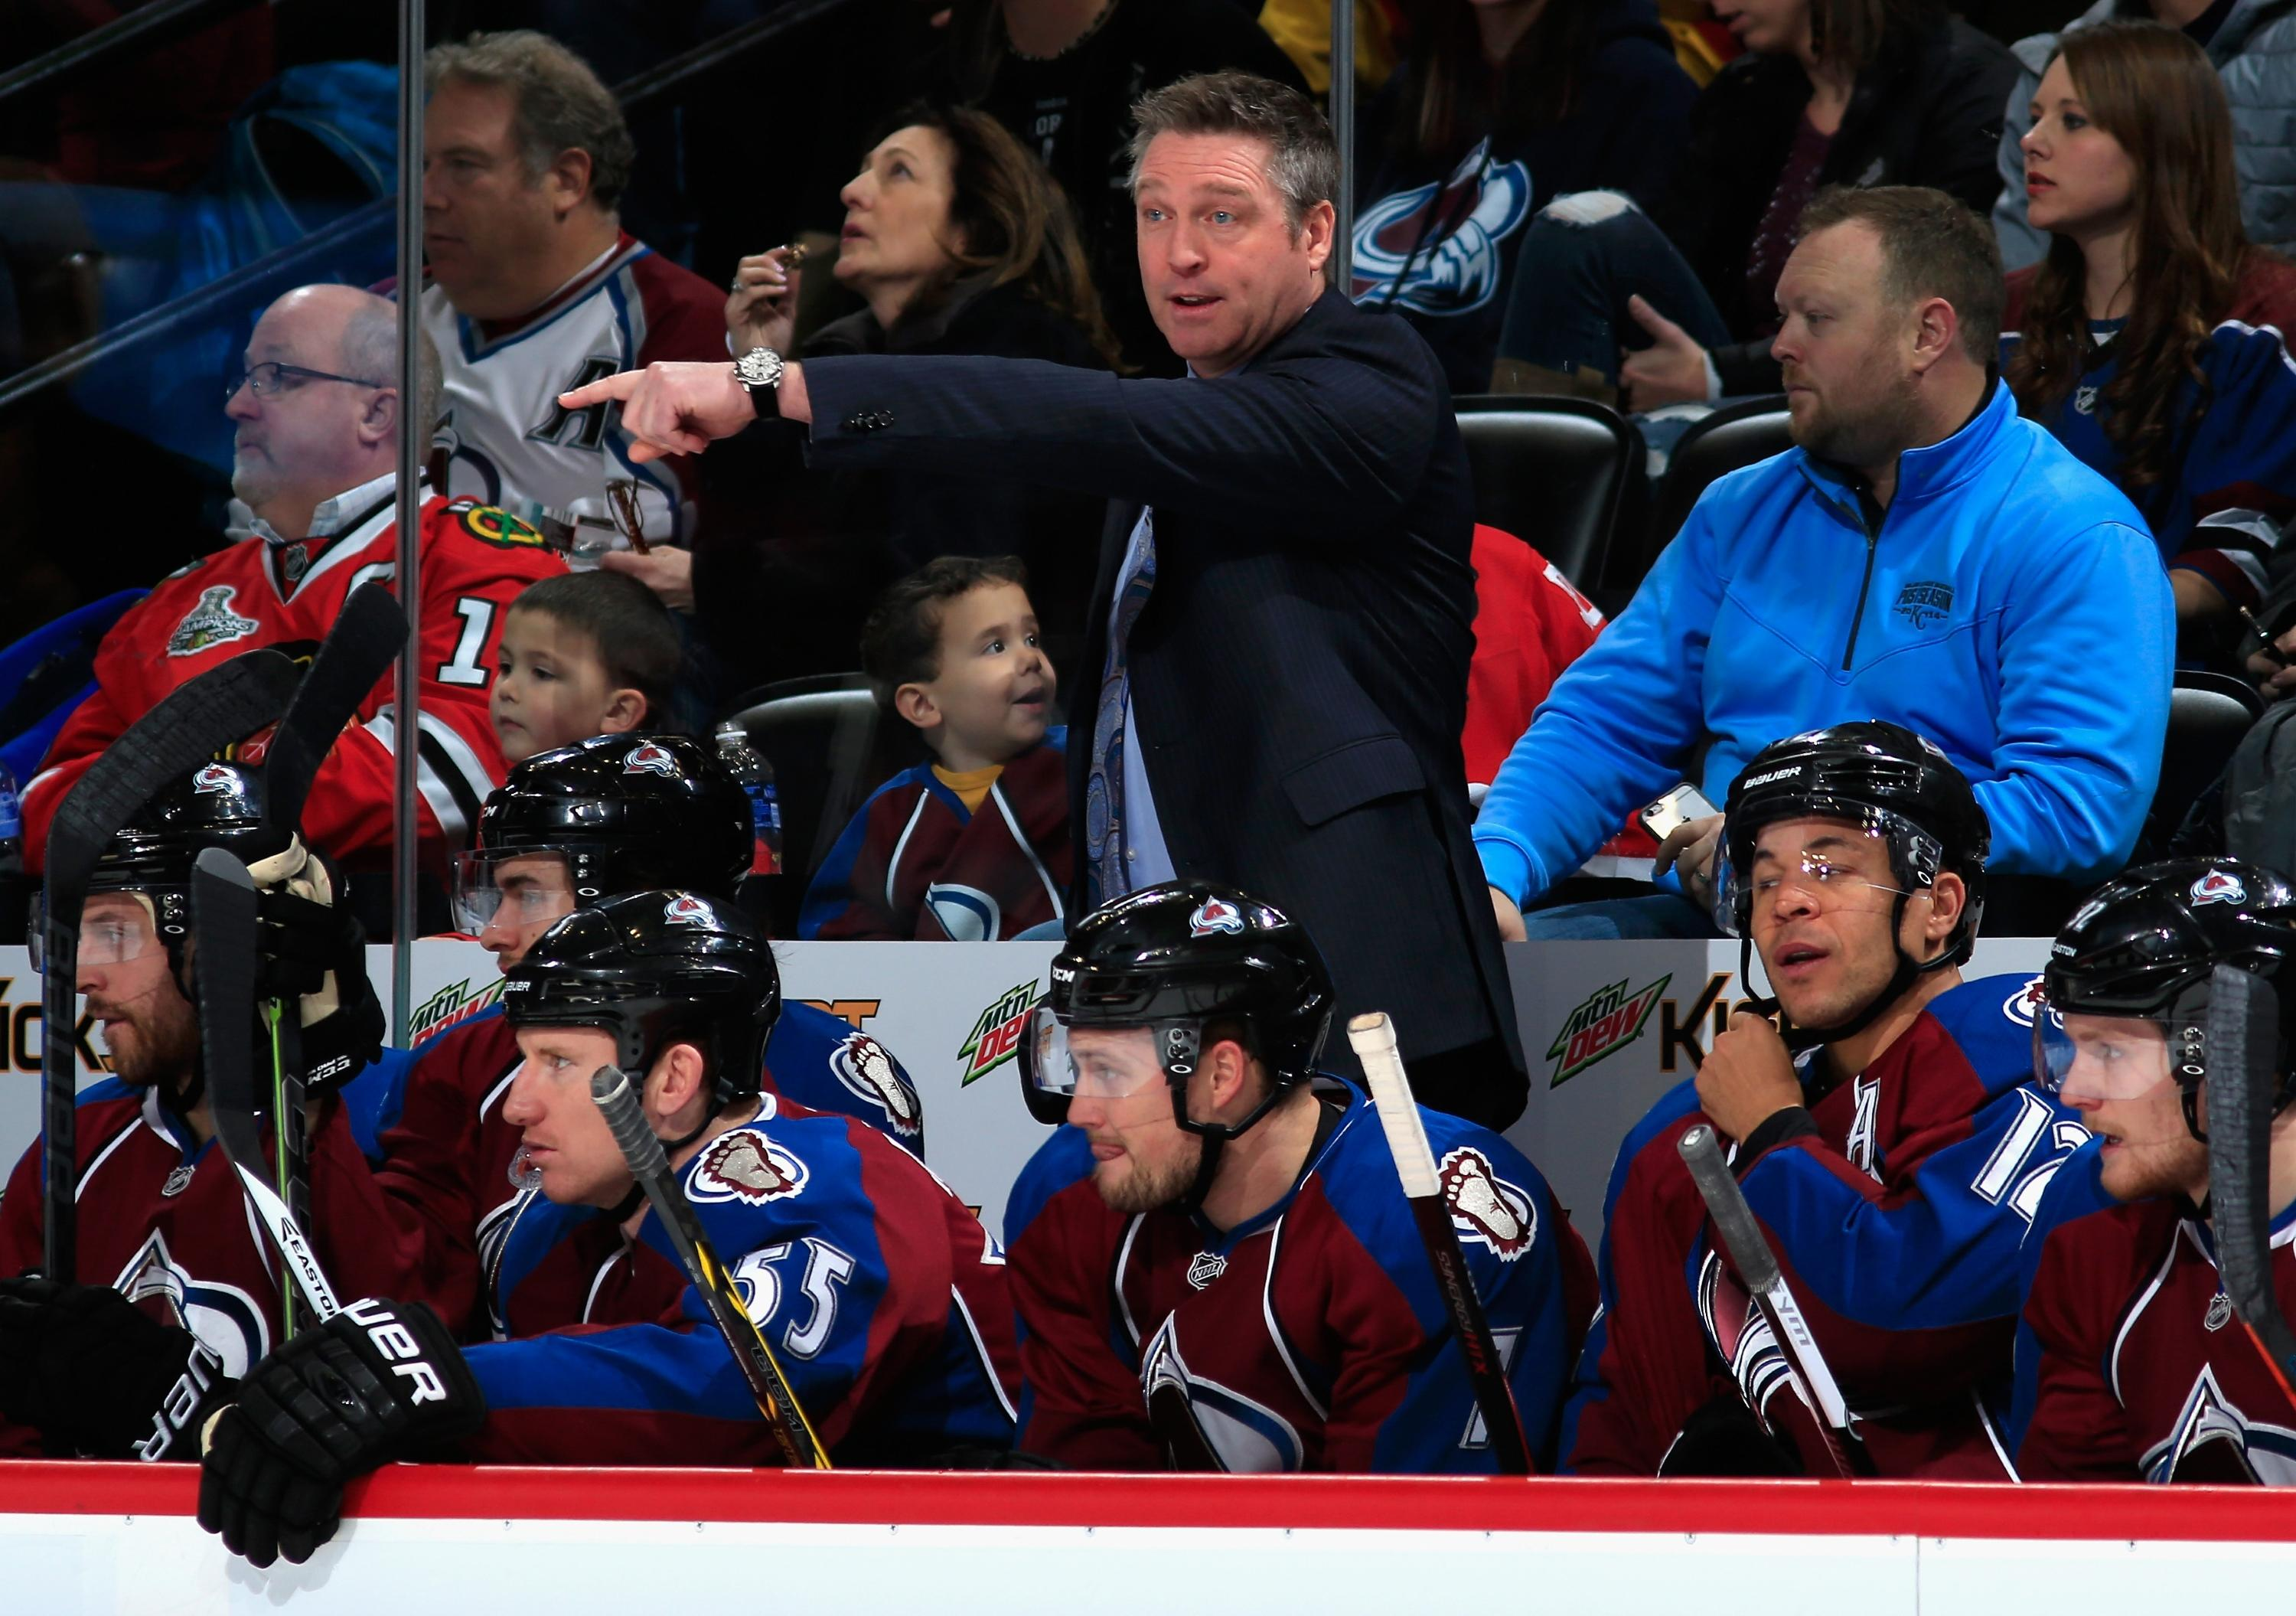 Patrick Roy chimes in on Martin Brodeur retirement